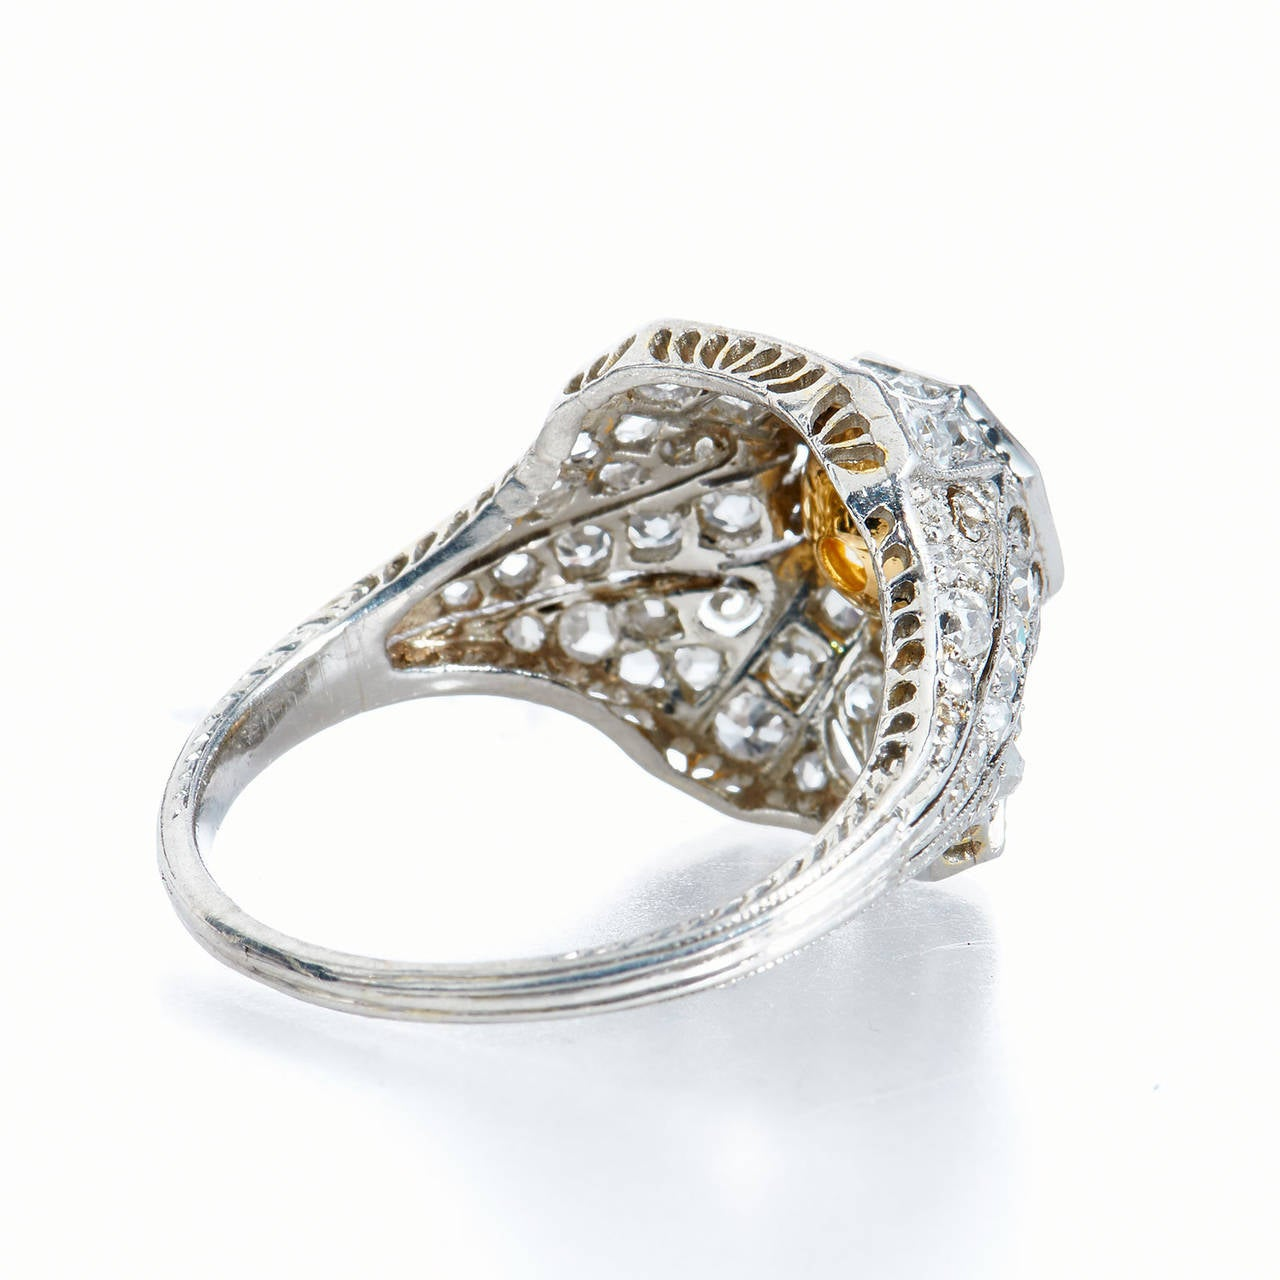 1.25 Carat Natural Fancy Yellow Old European Cut Diamond Platinum Ring In Excellent Condition For Sale In Miami, FL